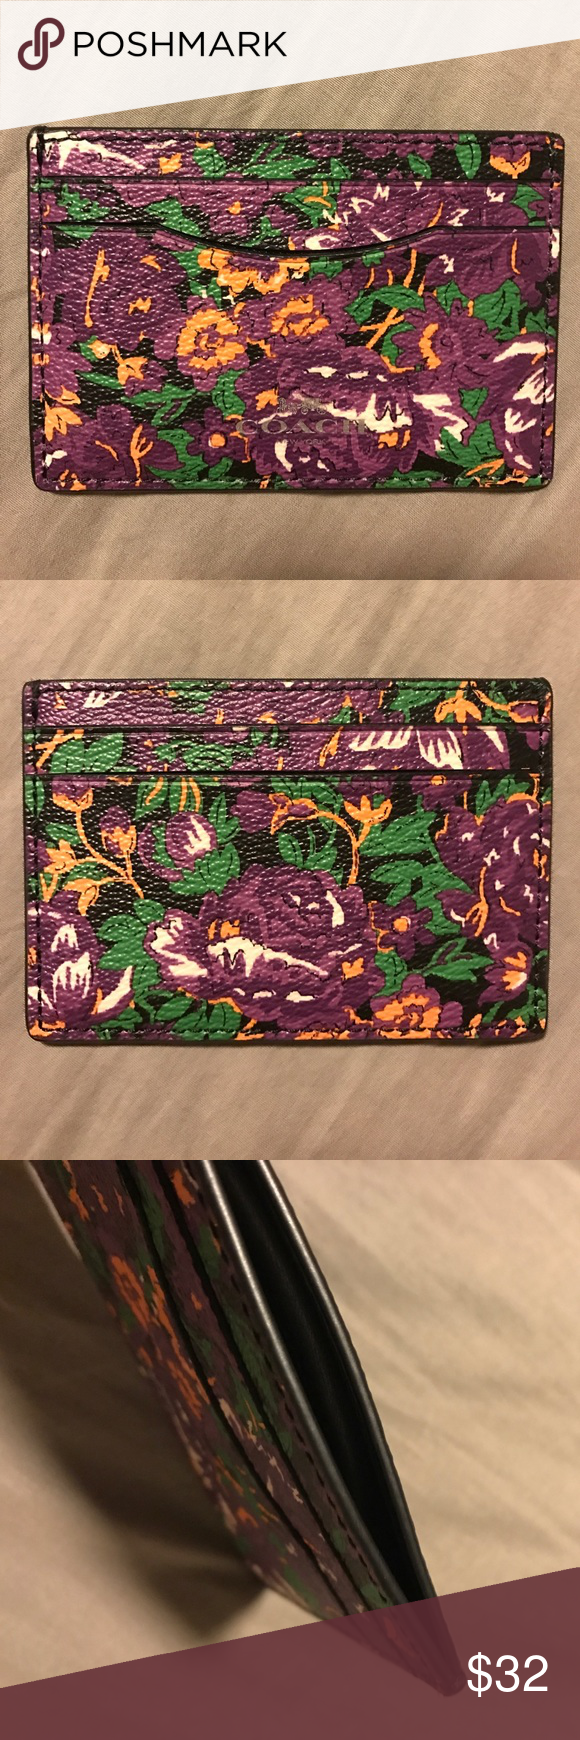 Coach purple floral card case Coach cardholder. Two card slots on each side & one card slot on top. Gorgeous purple floral print all over, front & back. Coach Bags Wallets